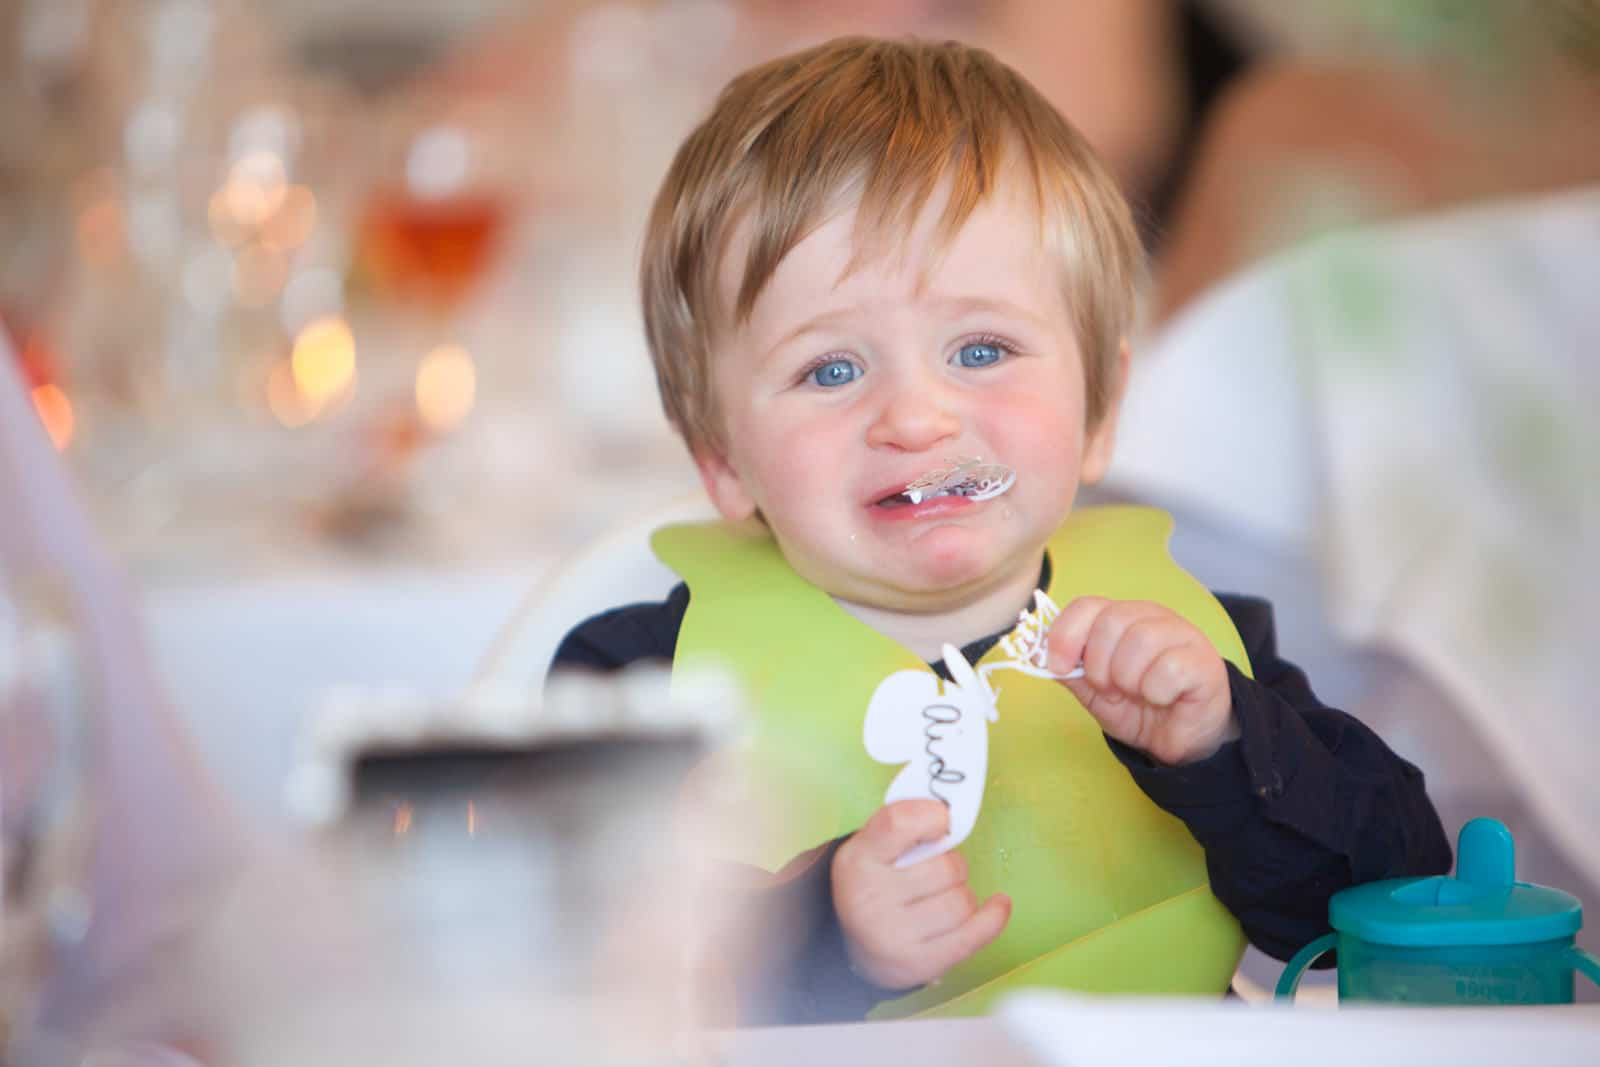 A child so hungry he is eating a paper wedding decoration